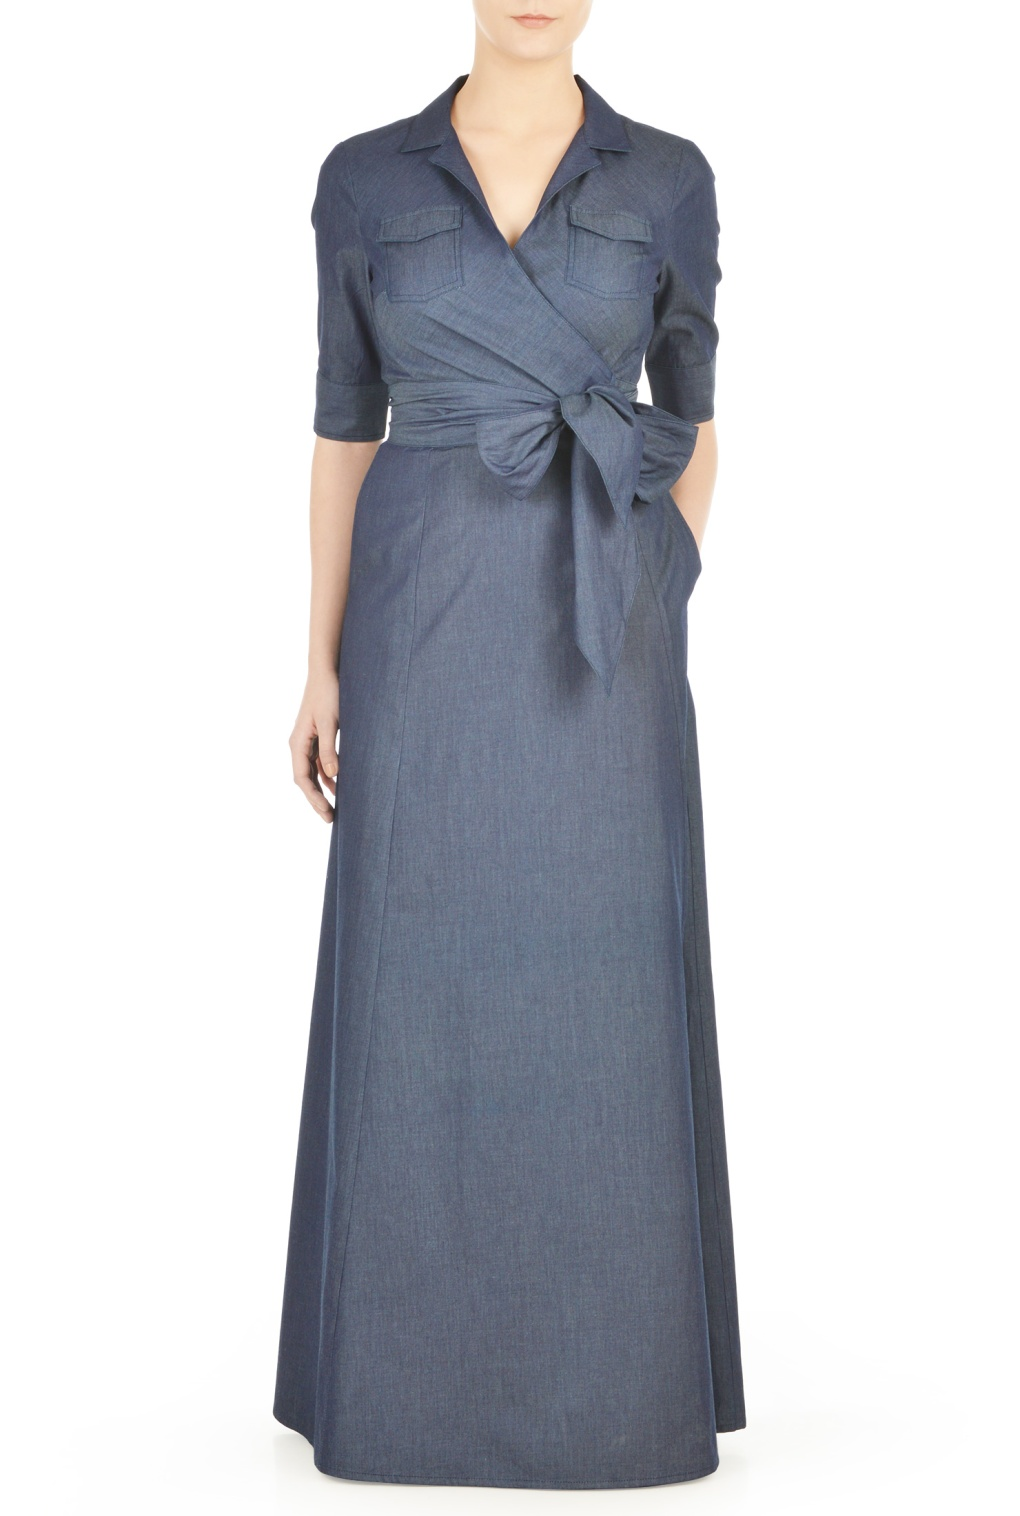 #falltrend maxi wrap dress